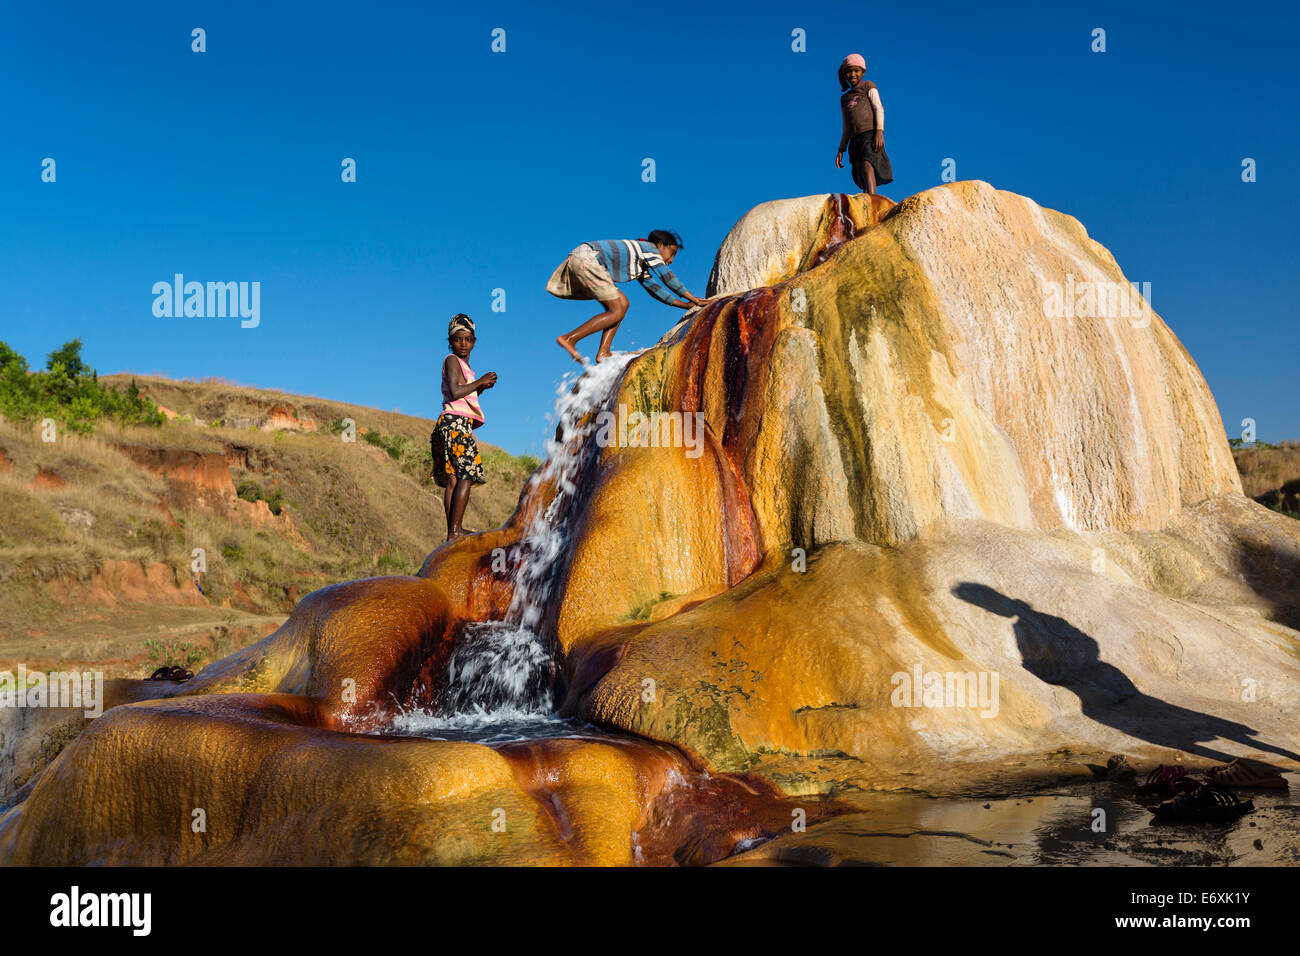 Madagascan children playing in a spouting Geyser, Geysers of Ampefy, highlands, Madagascar, Africa - Stock Image